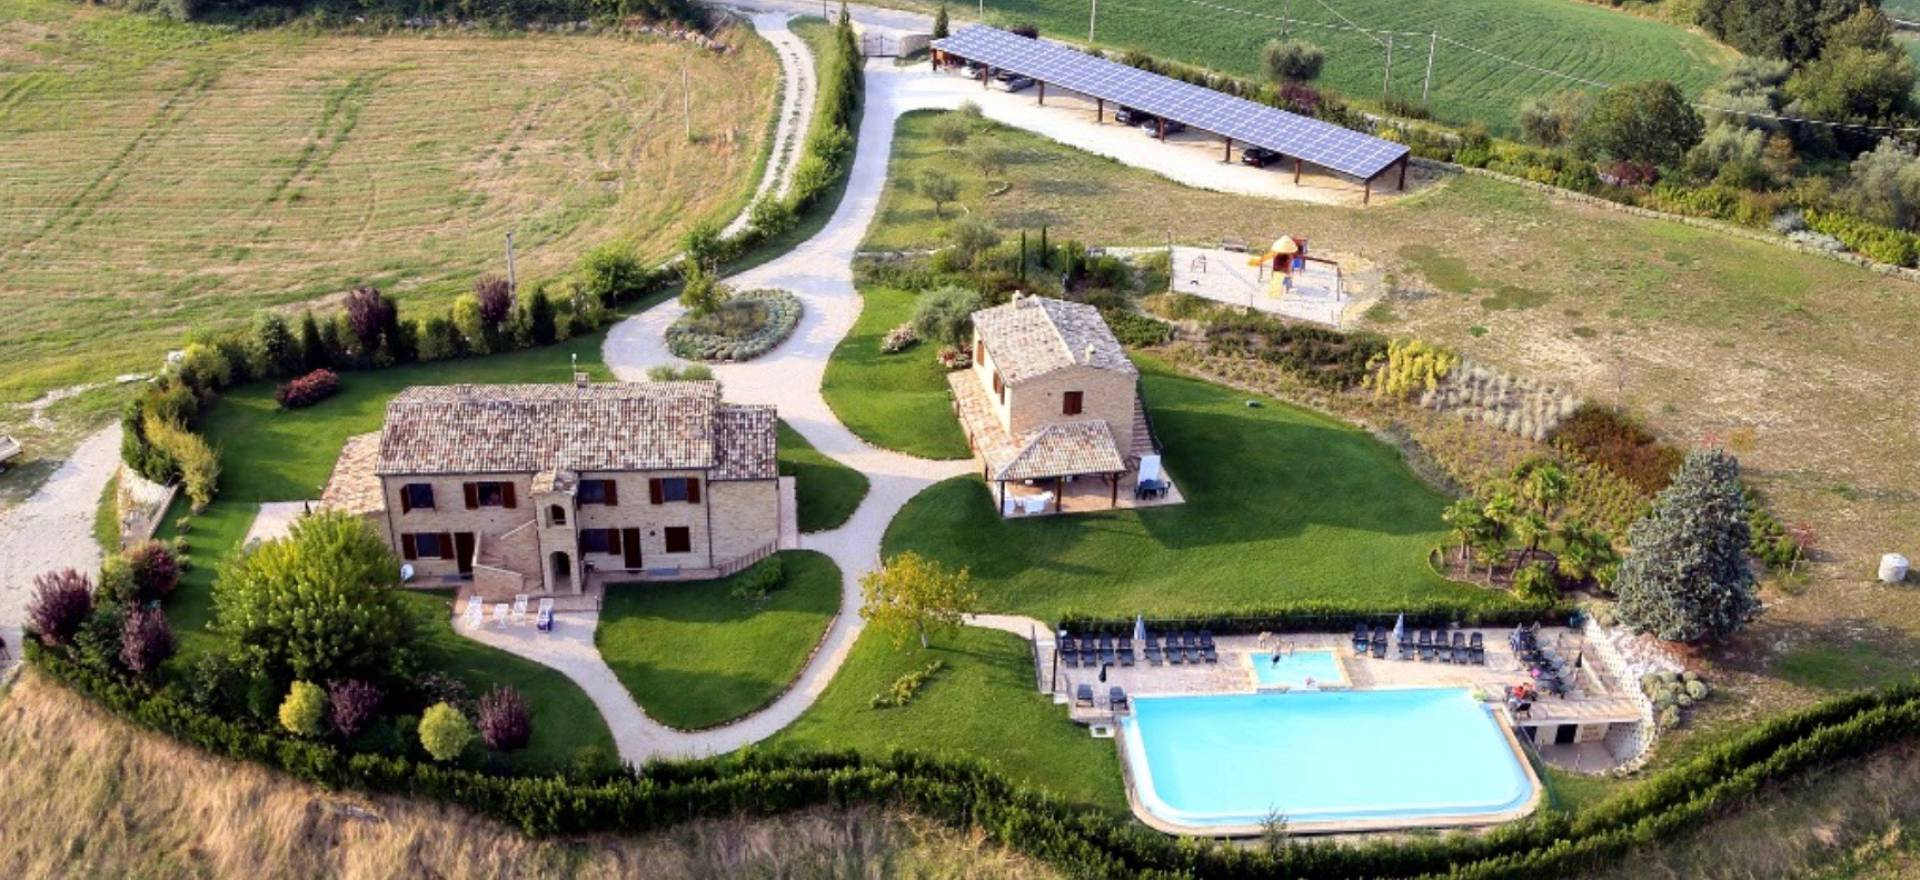 Agriturismo Marche Agriturismo Marche, rural location and child-friendly